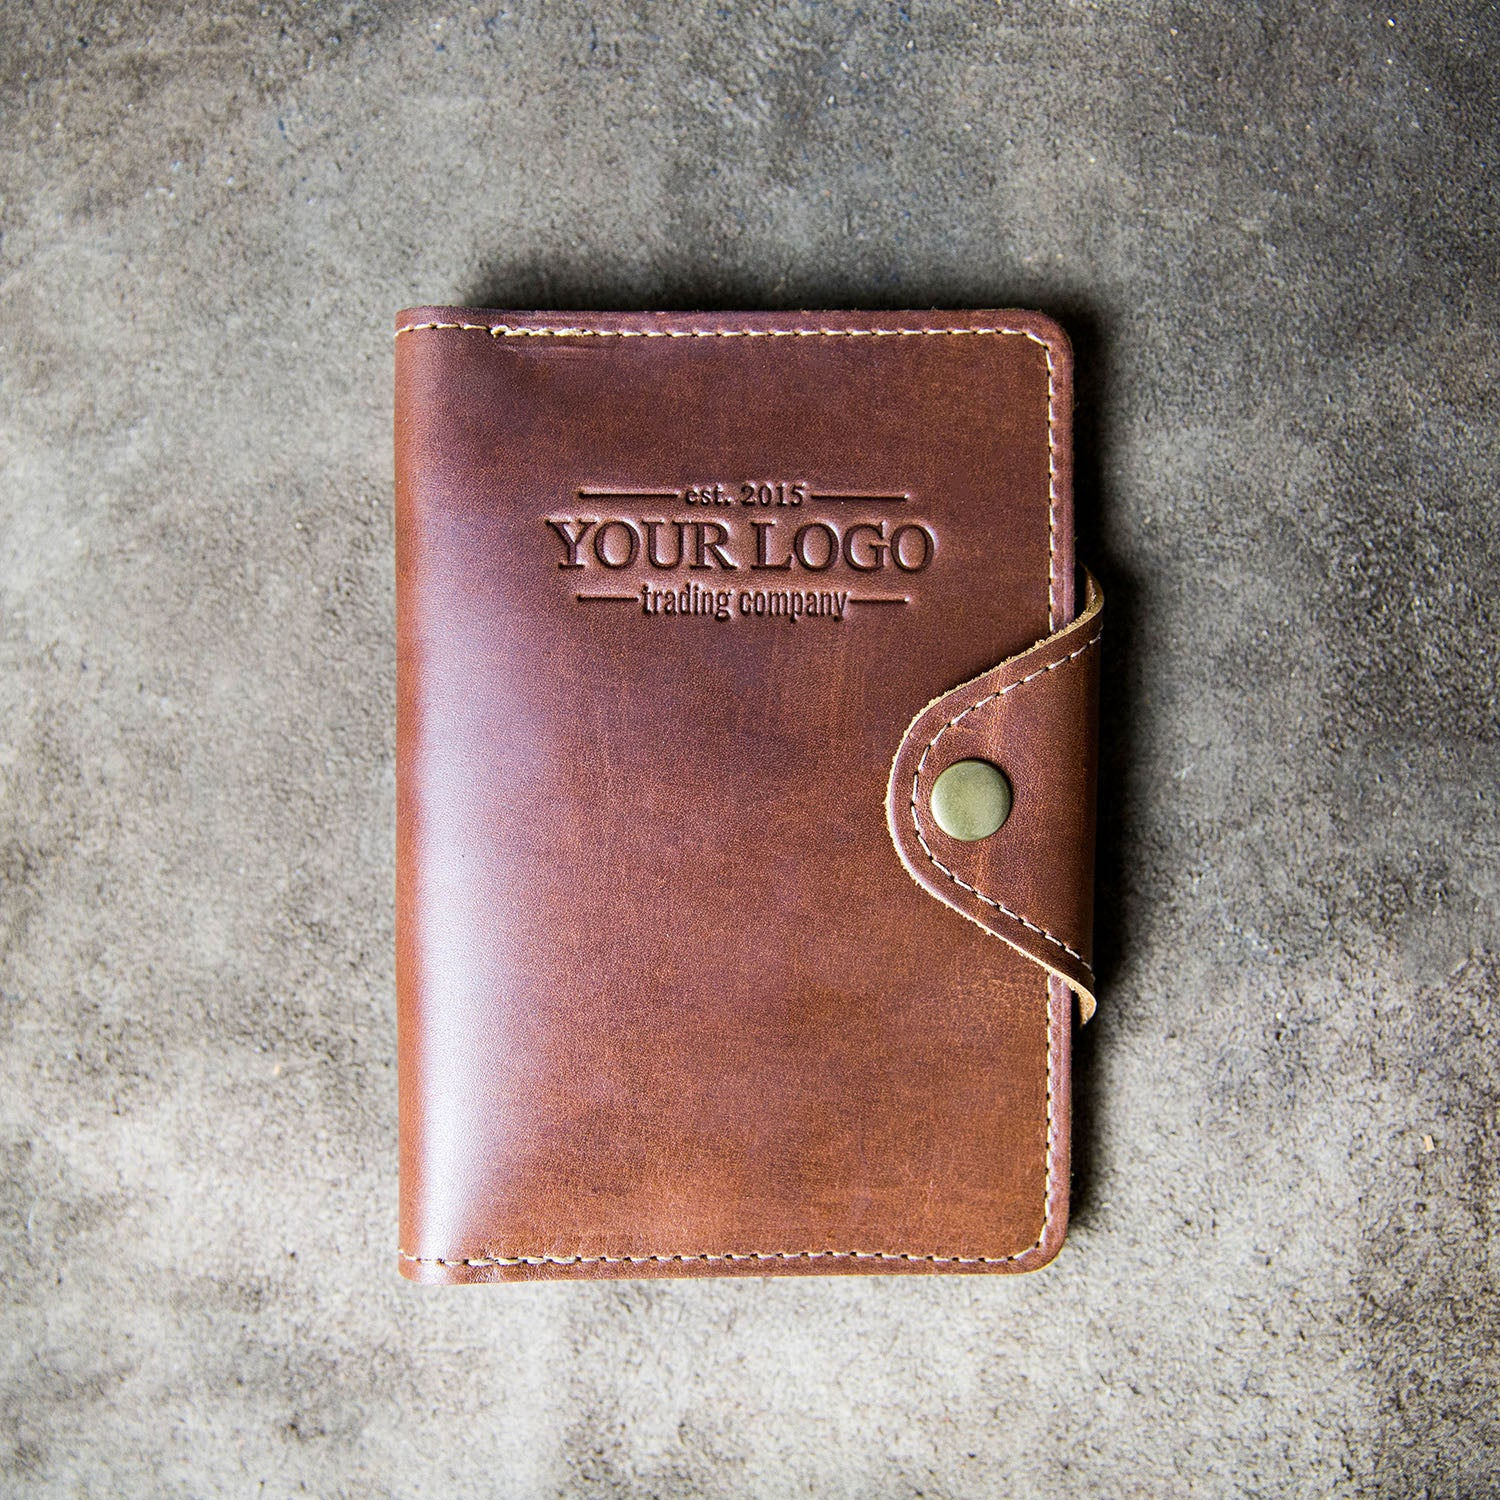 The Logbook Custom Logo Fine Leather Field Notes Moleskine Wallet Pocketbook Cover Put Your Logo On It Corporate